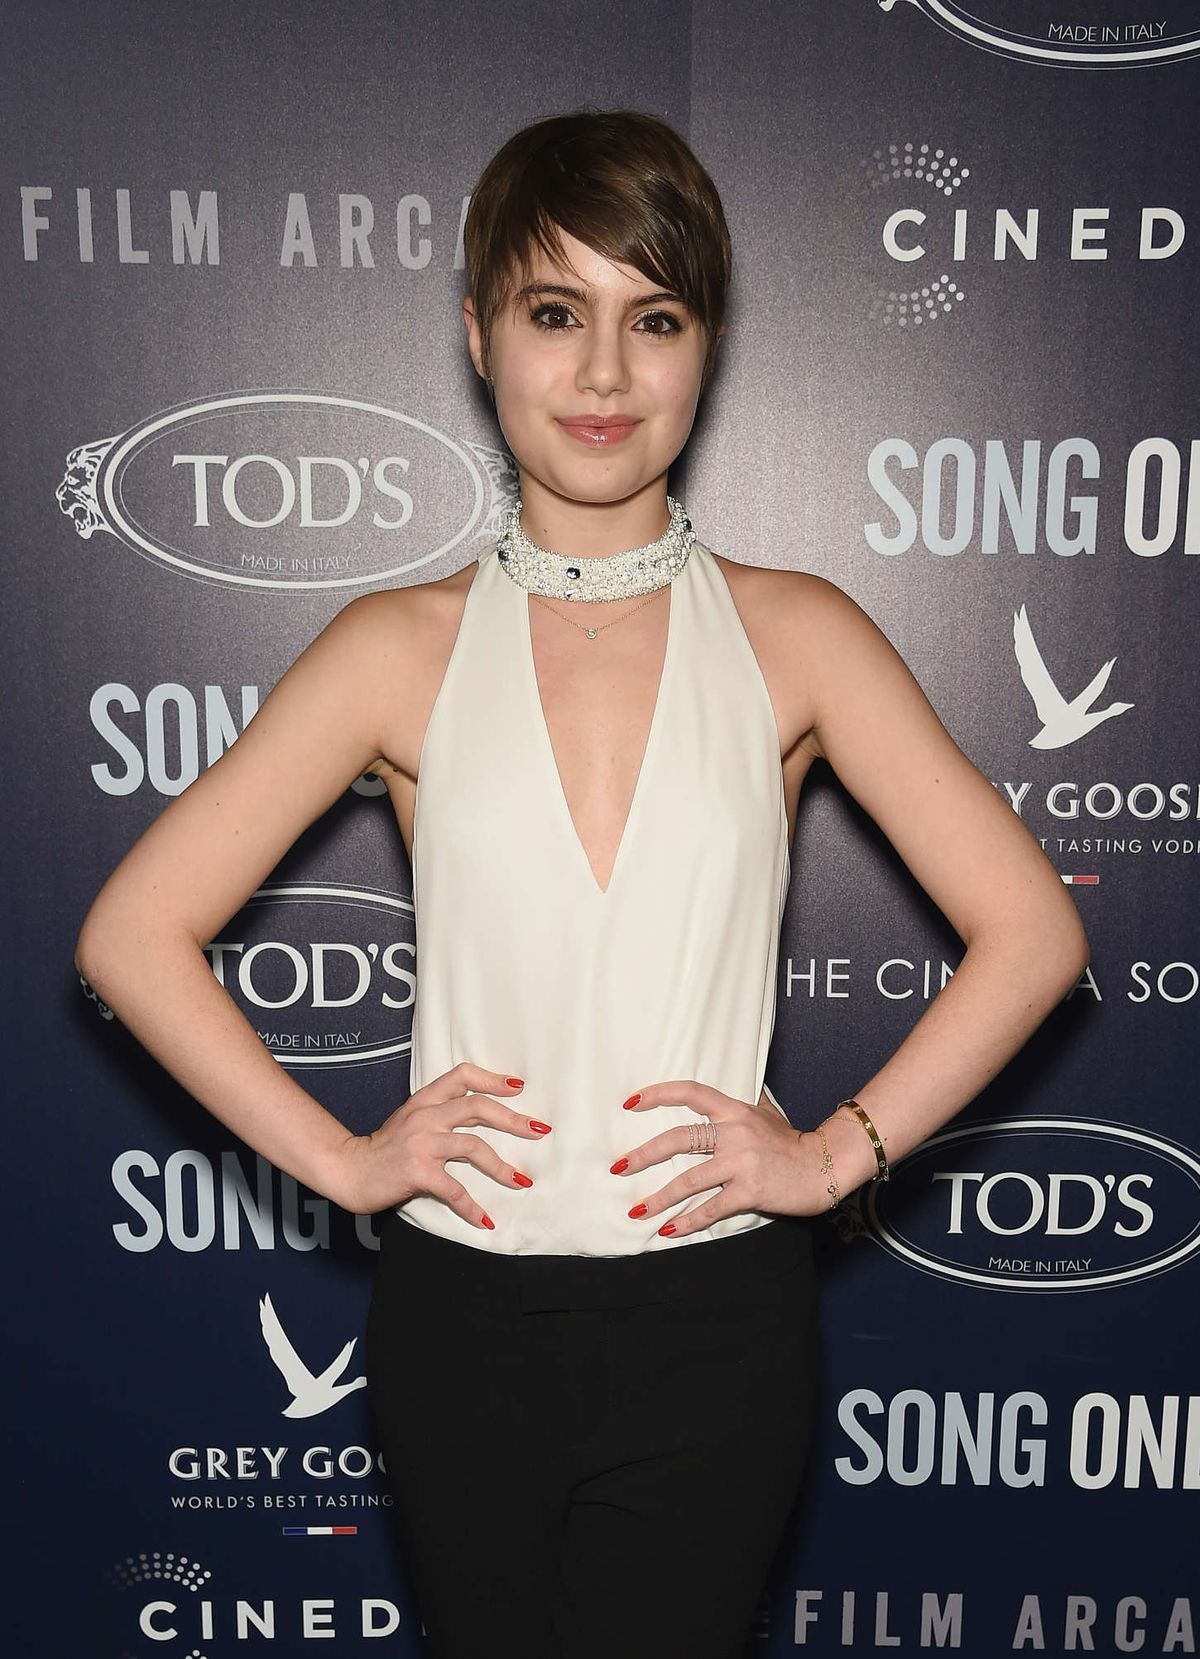 33 Hottest Sami Gayle Pictures That Will Make Fall In Love With Her